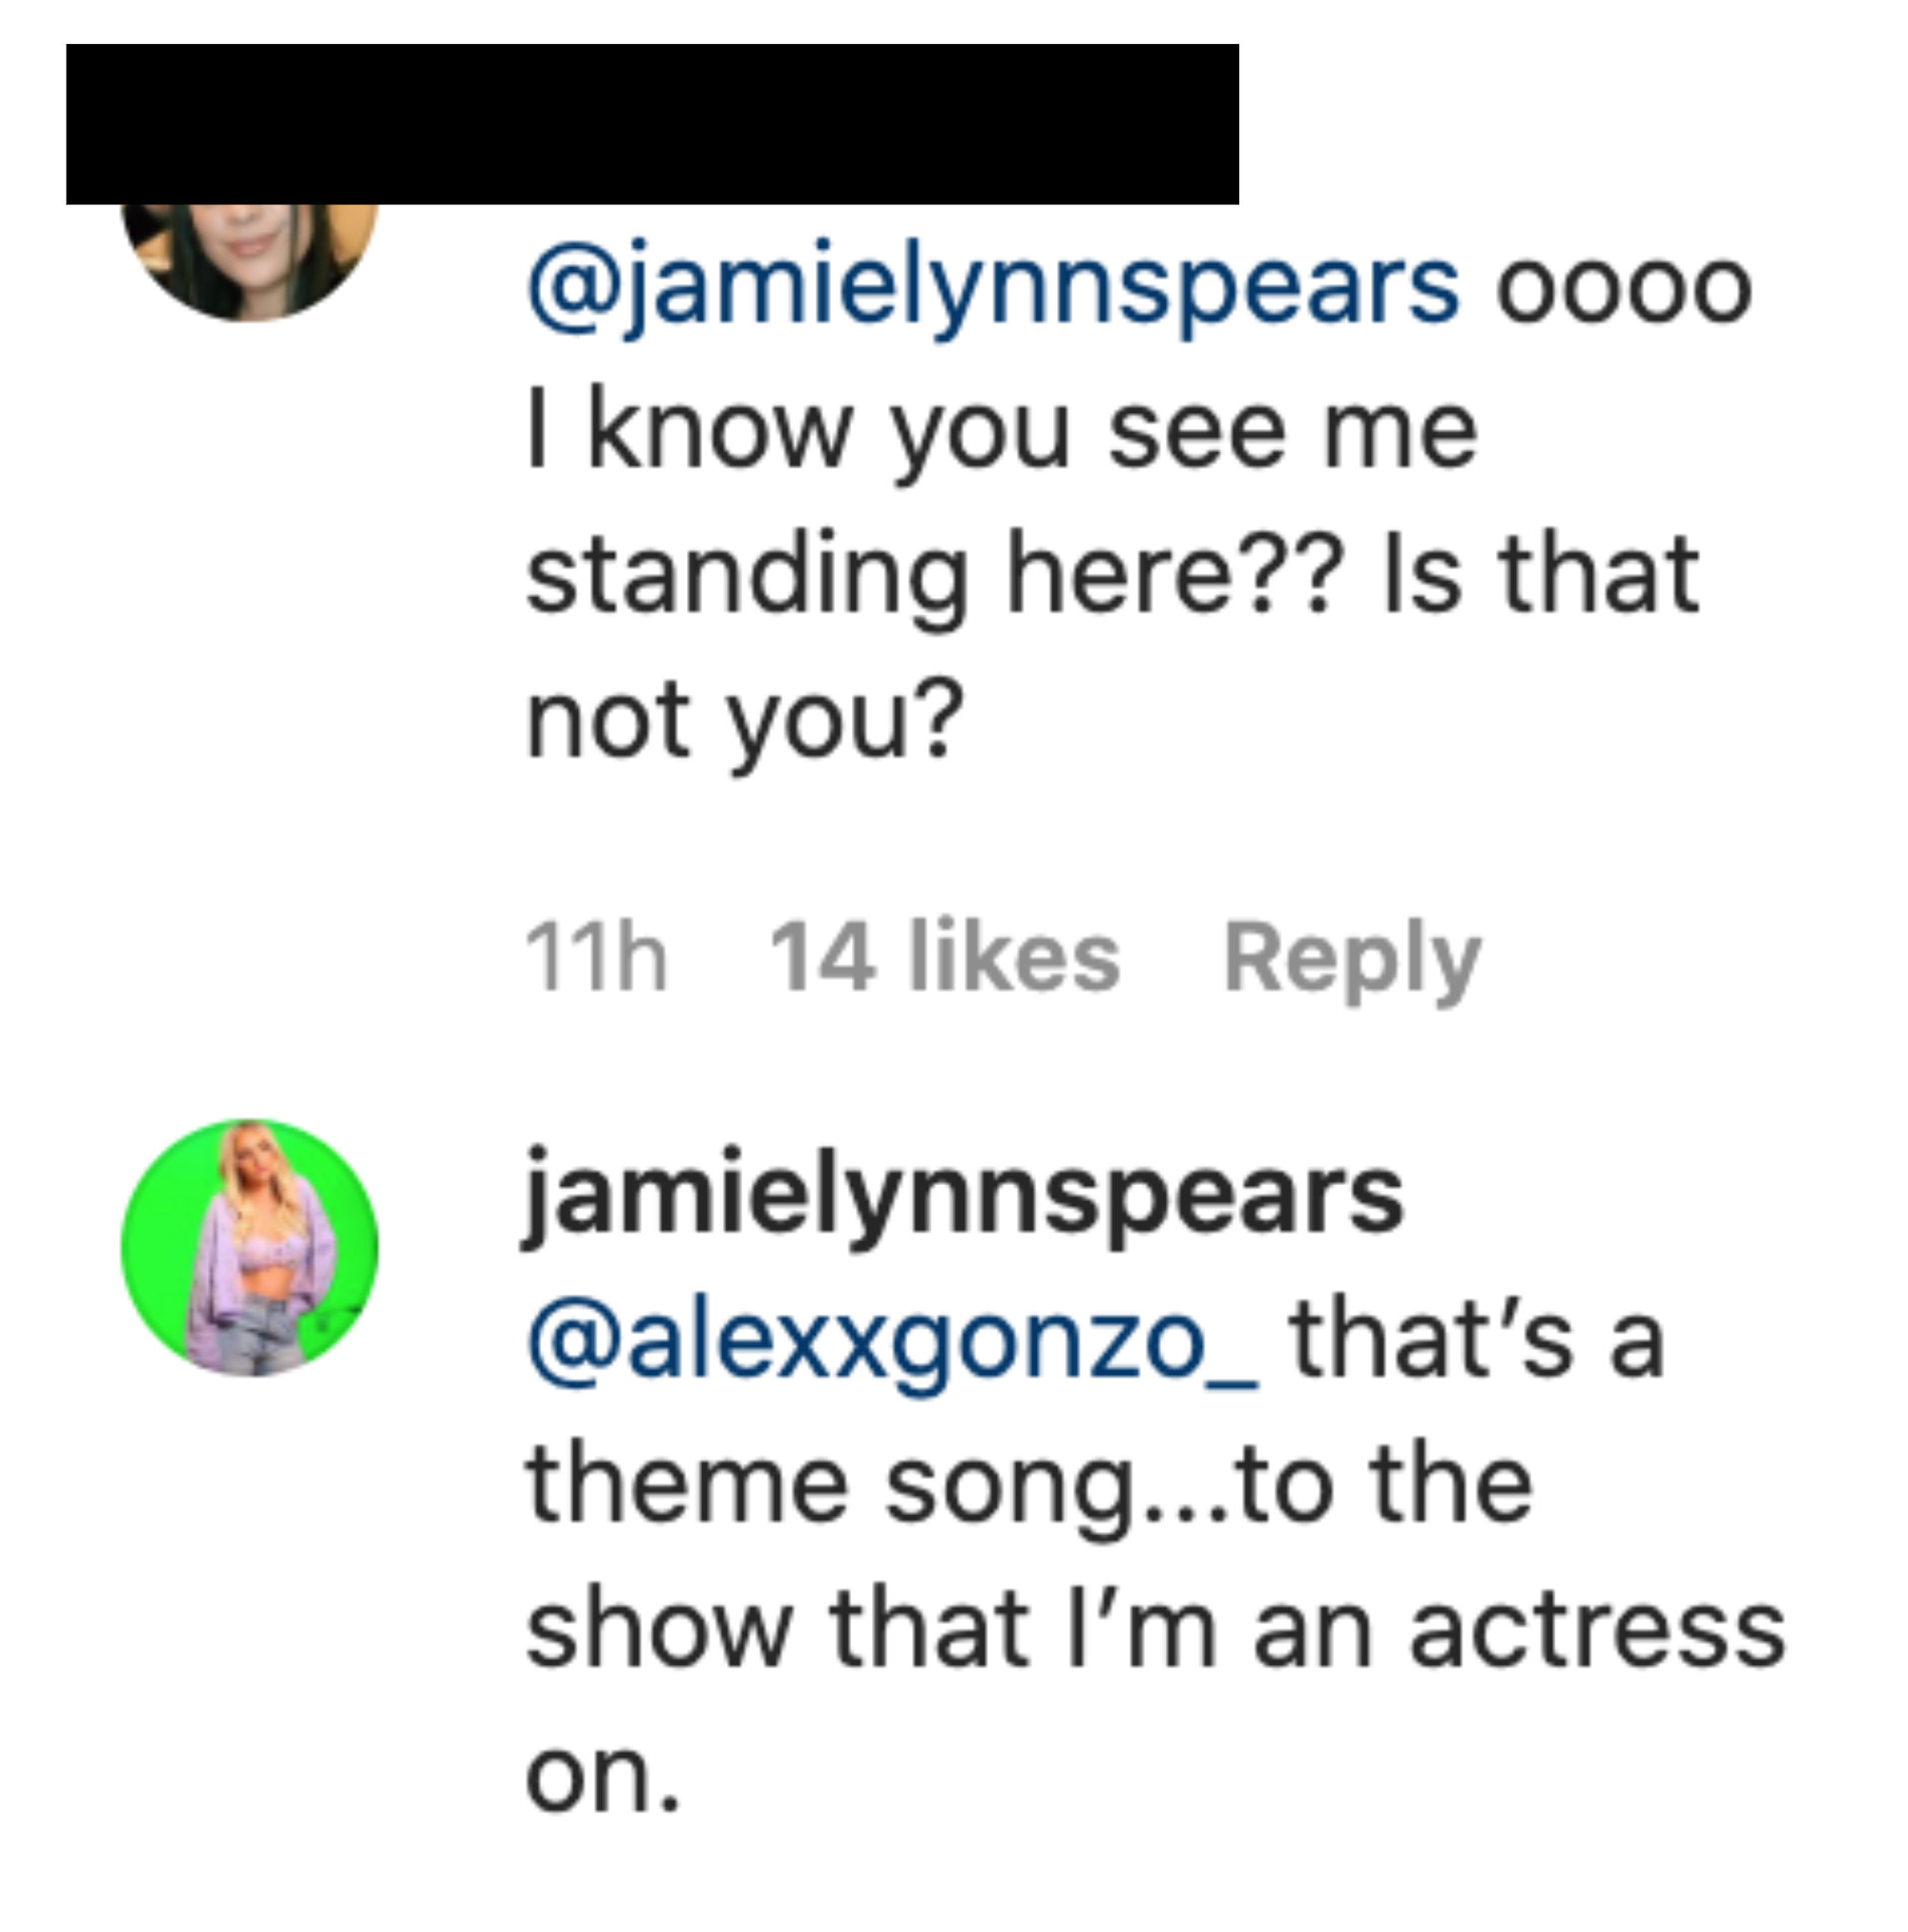 """Jamie Lynn says """"that's a theme song...to the show that I'm an actress on"""""""